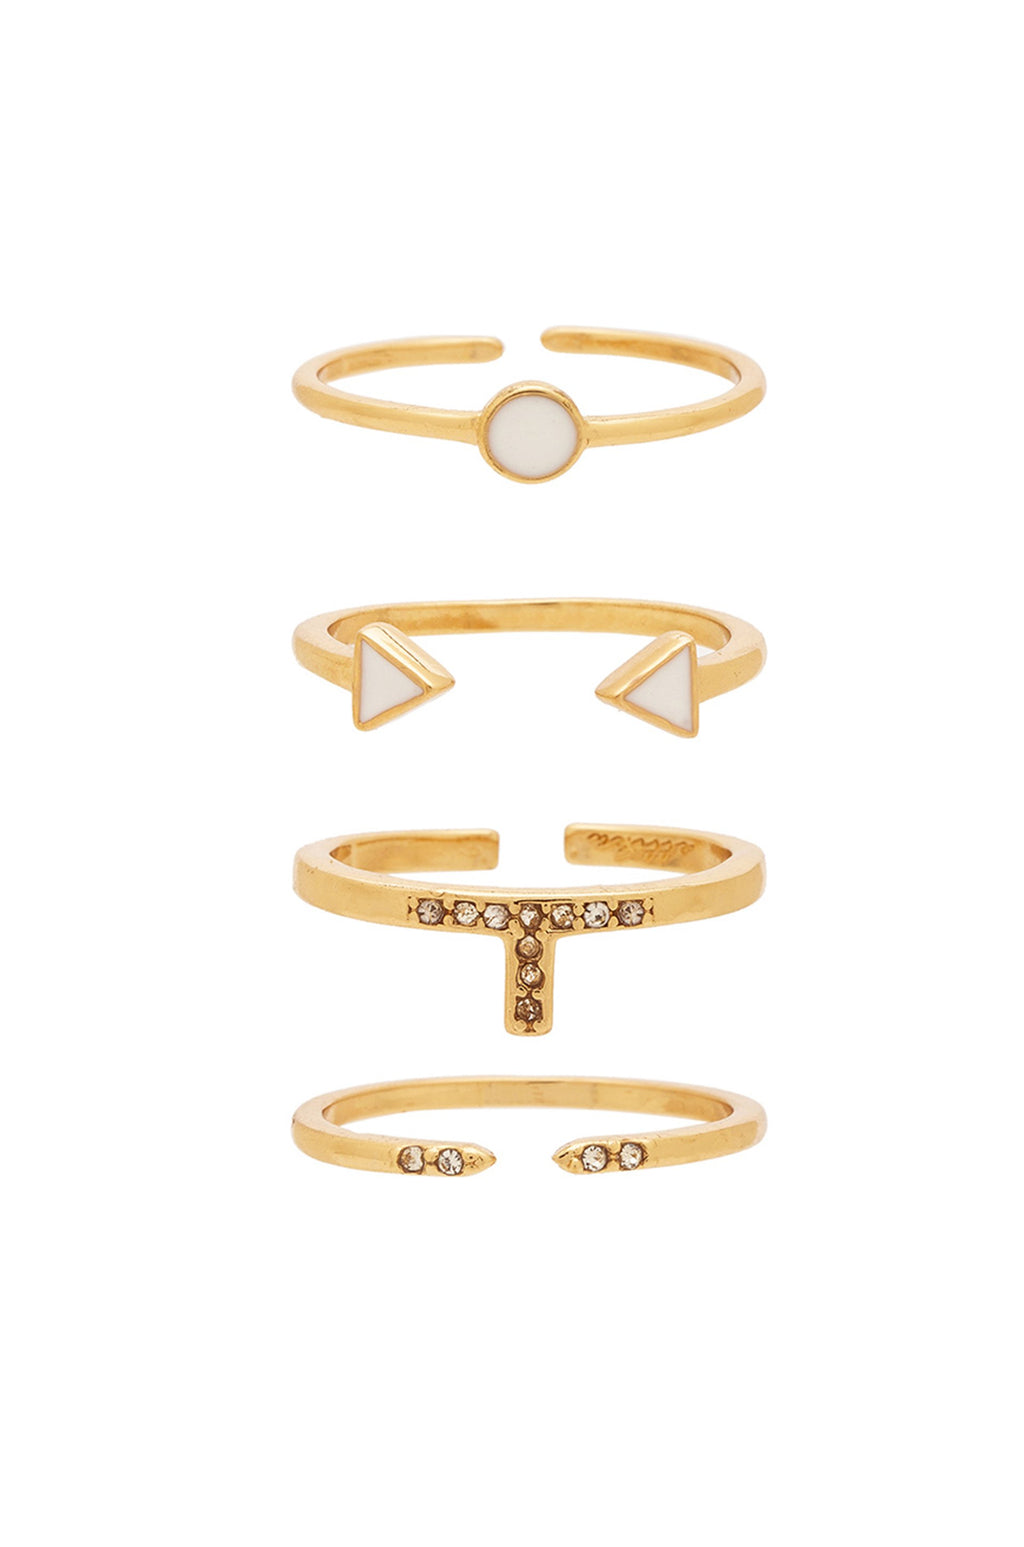 Set of 4 'Last Lover' Ring Set